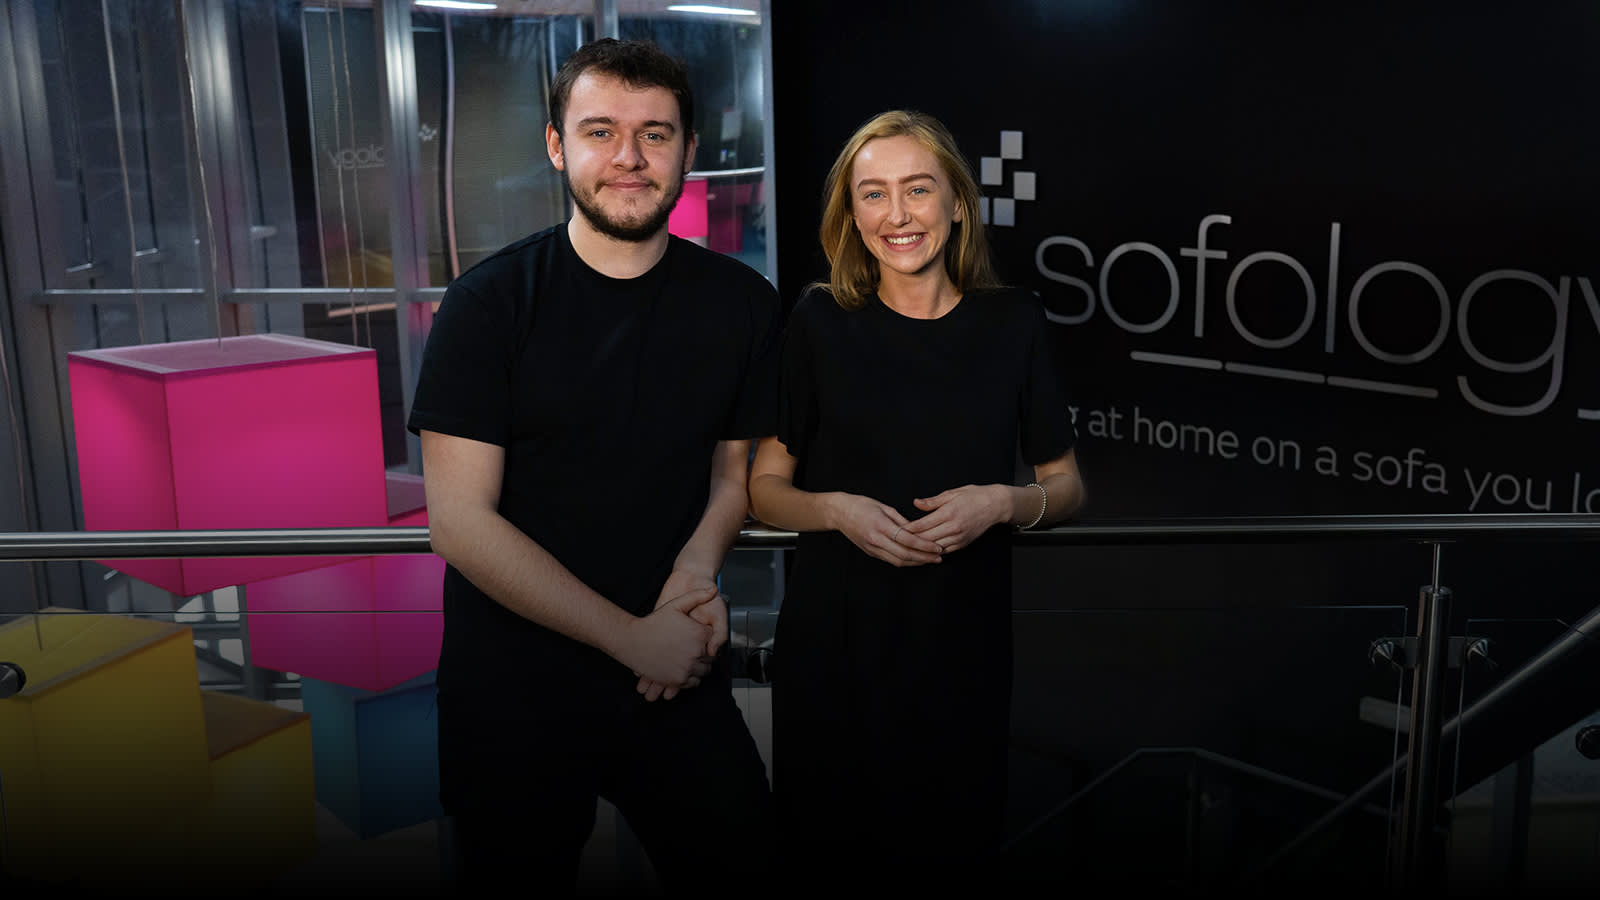 Sofology apprentices Jack and Amy